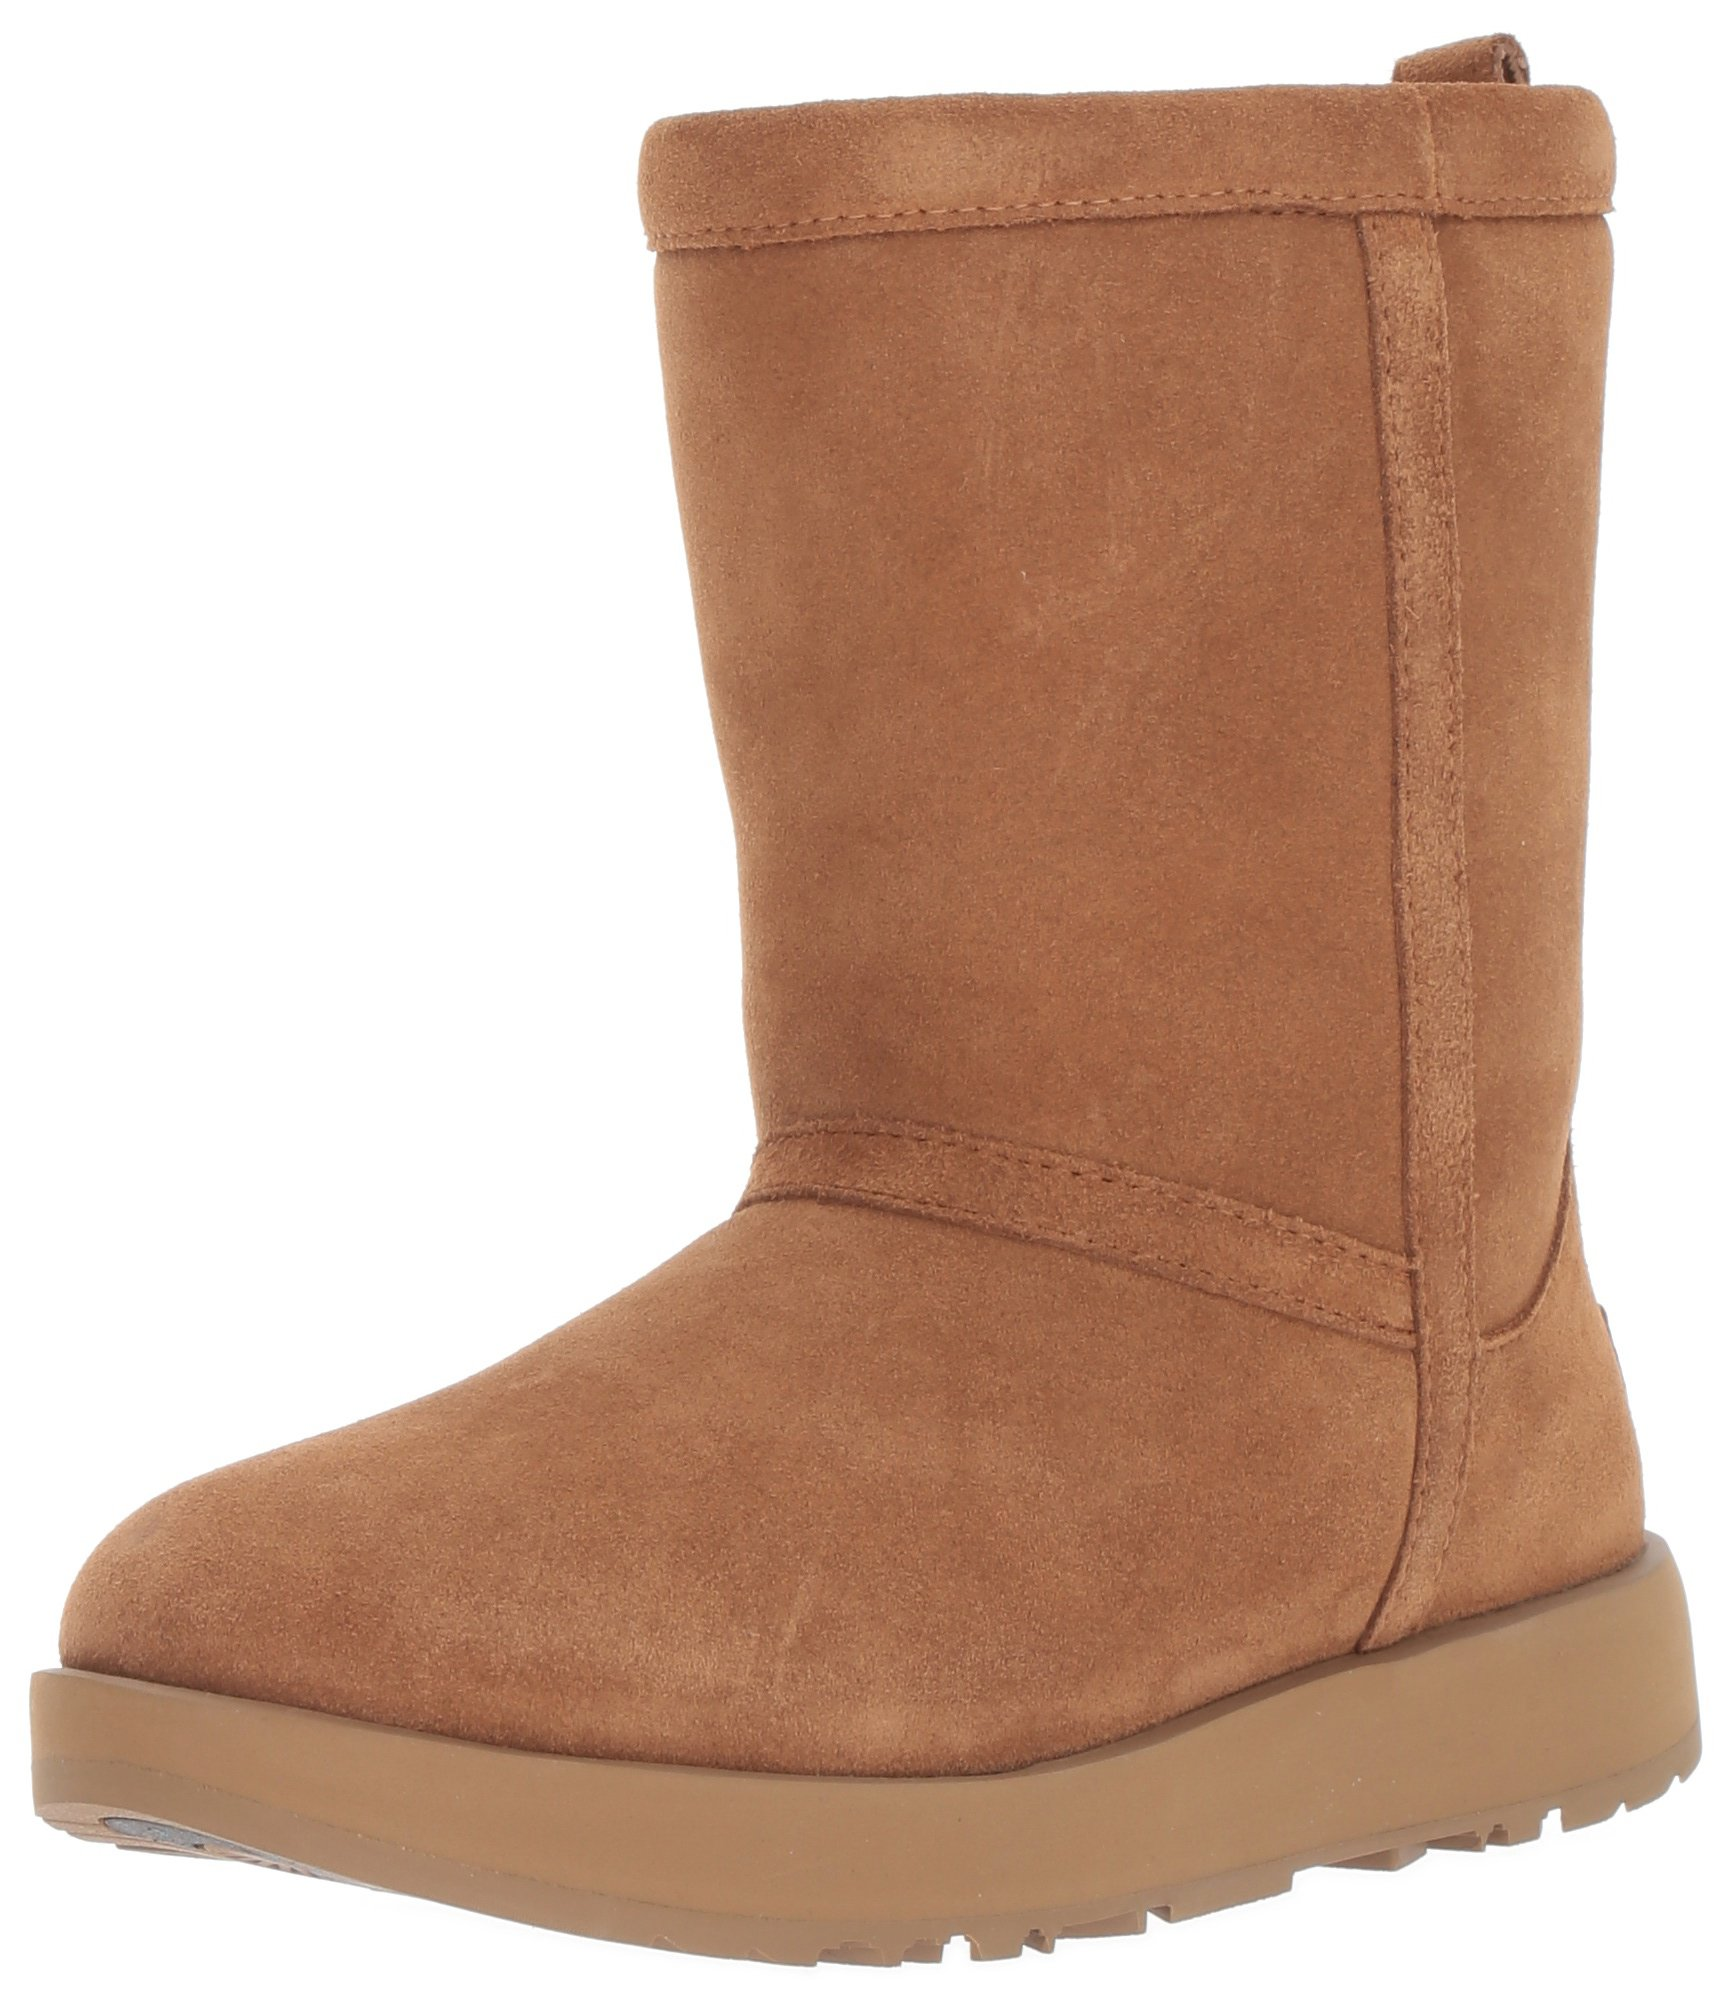 UGG Women's Classic Short Waterproof Snow Boot, Chestnut, 9 M US by UGG (Image #1)